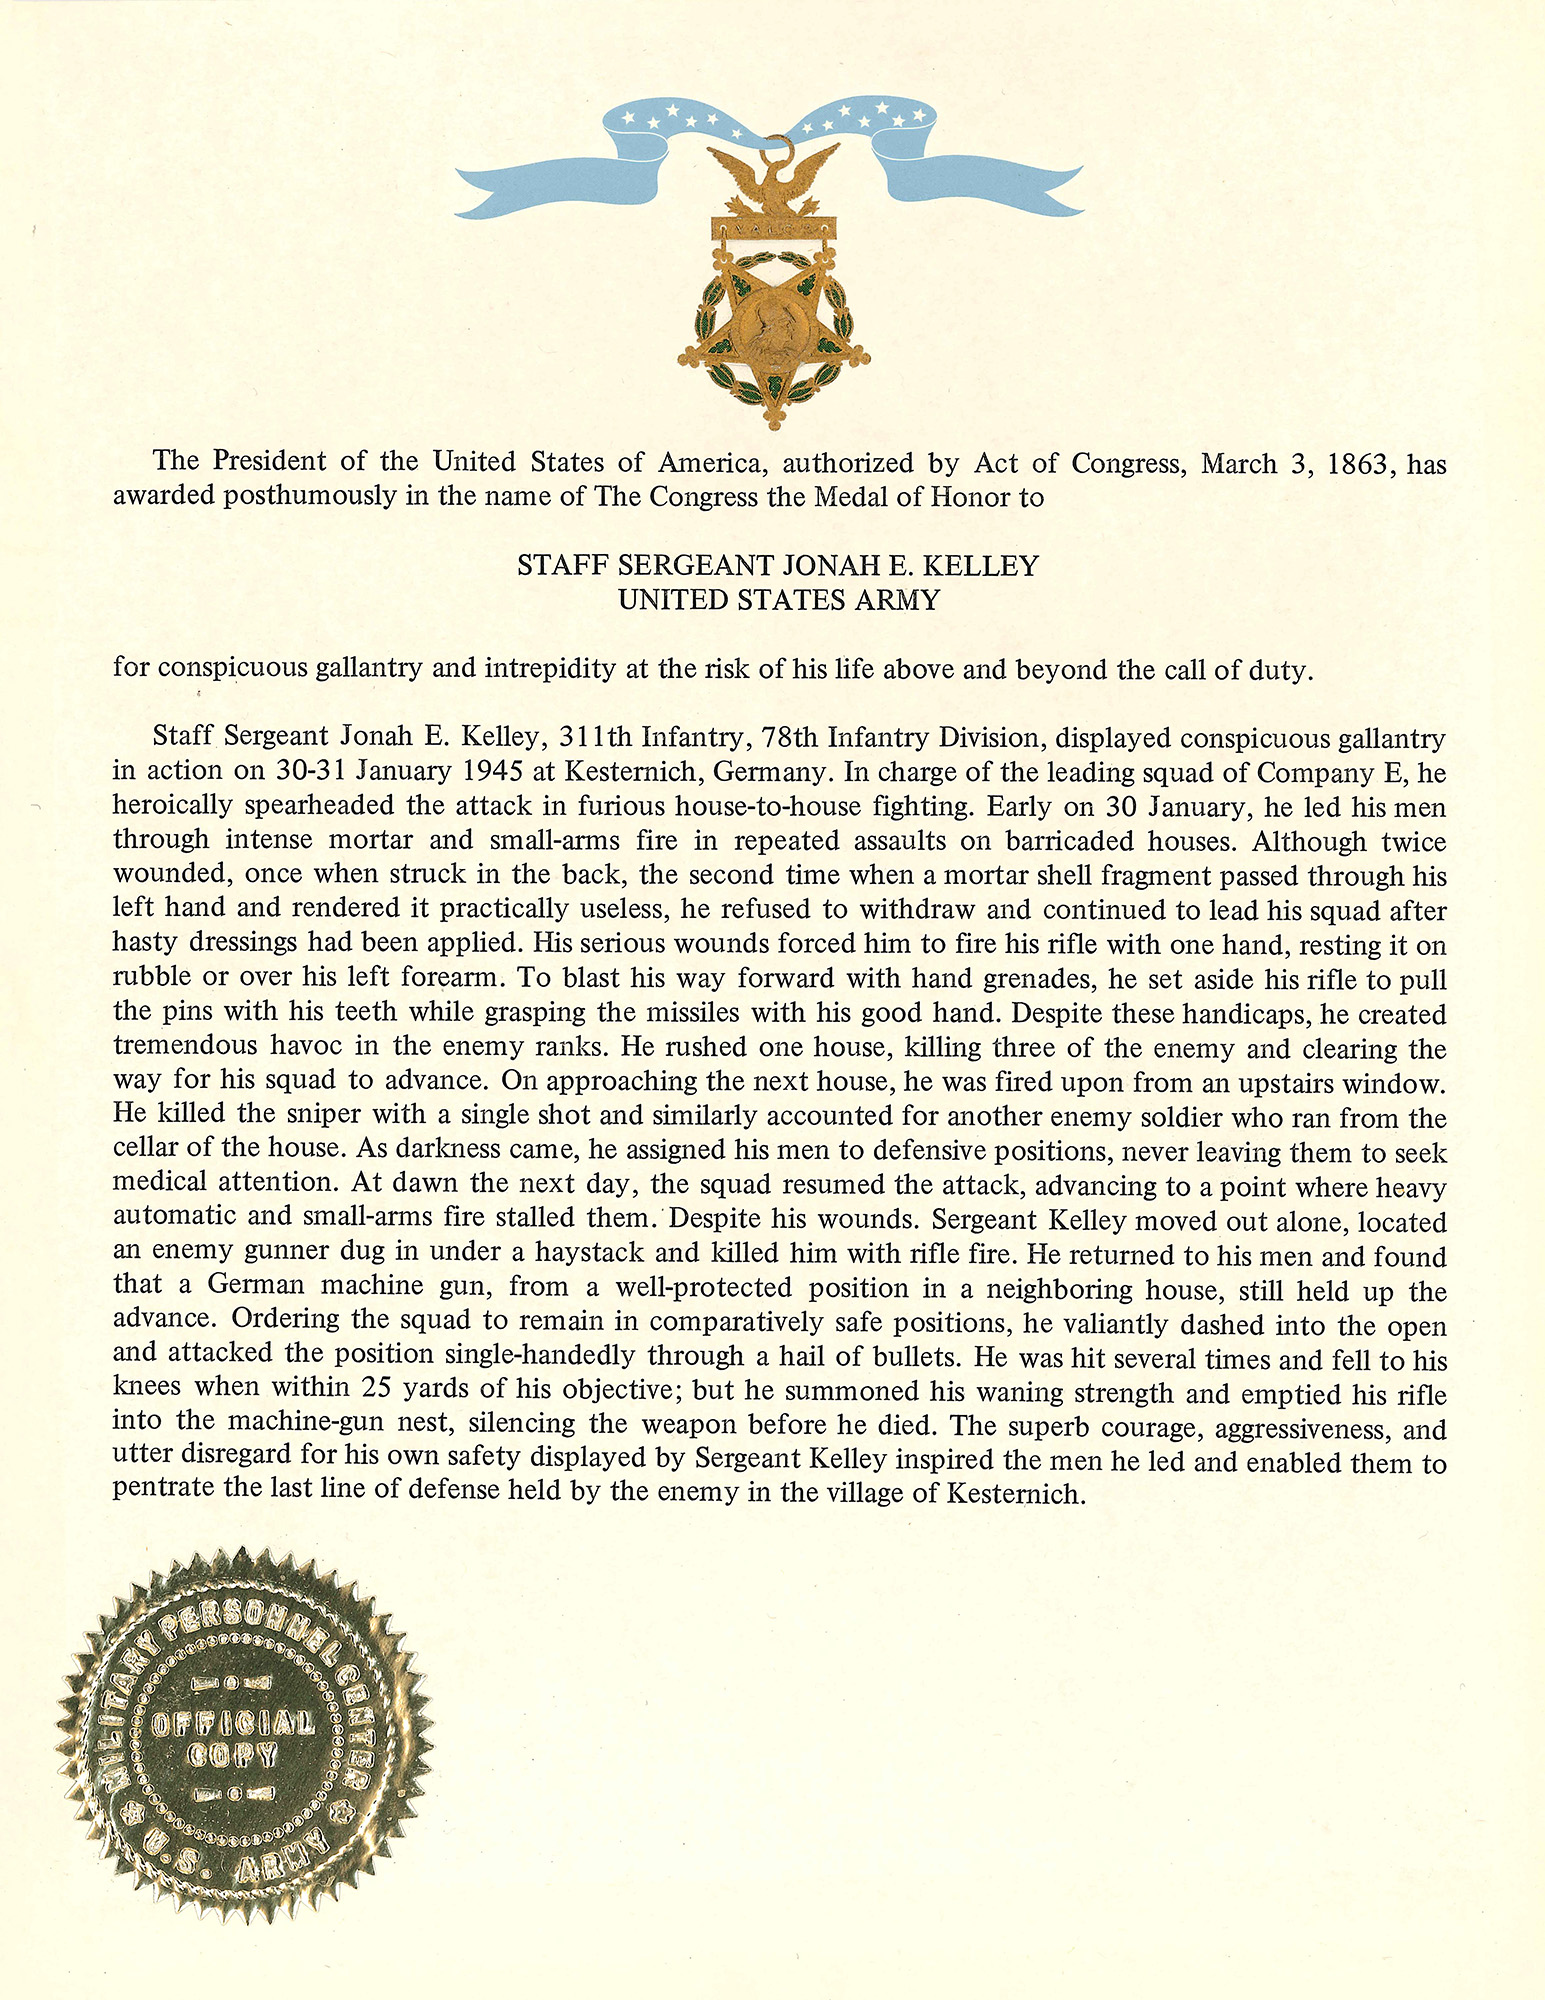 Congressional Medal of Honor Citation